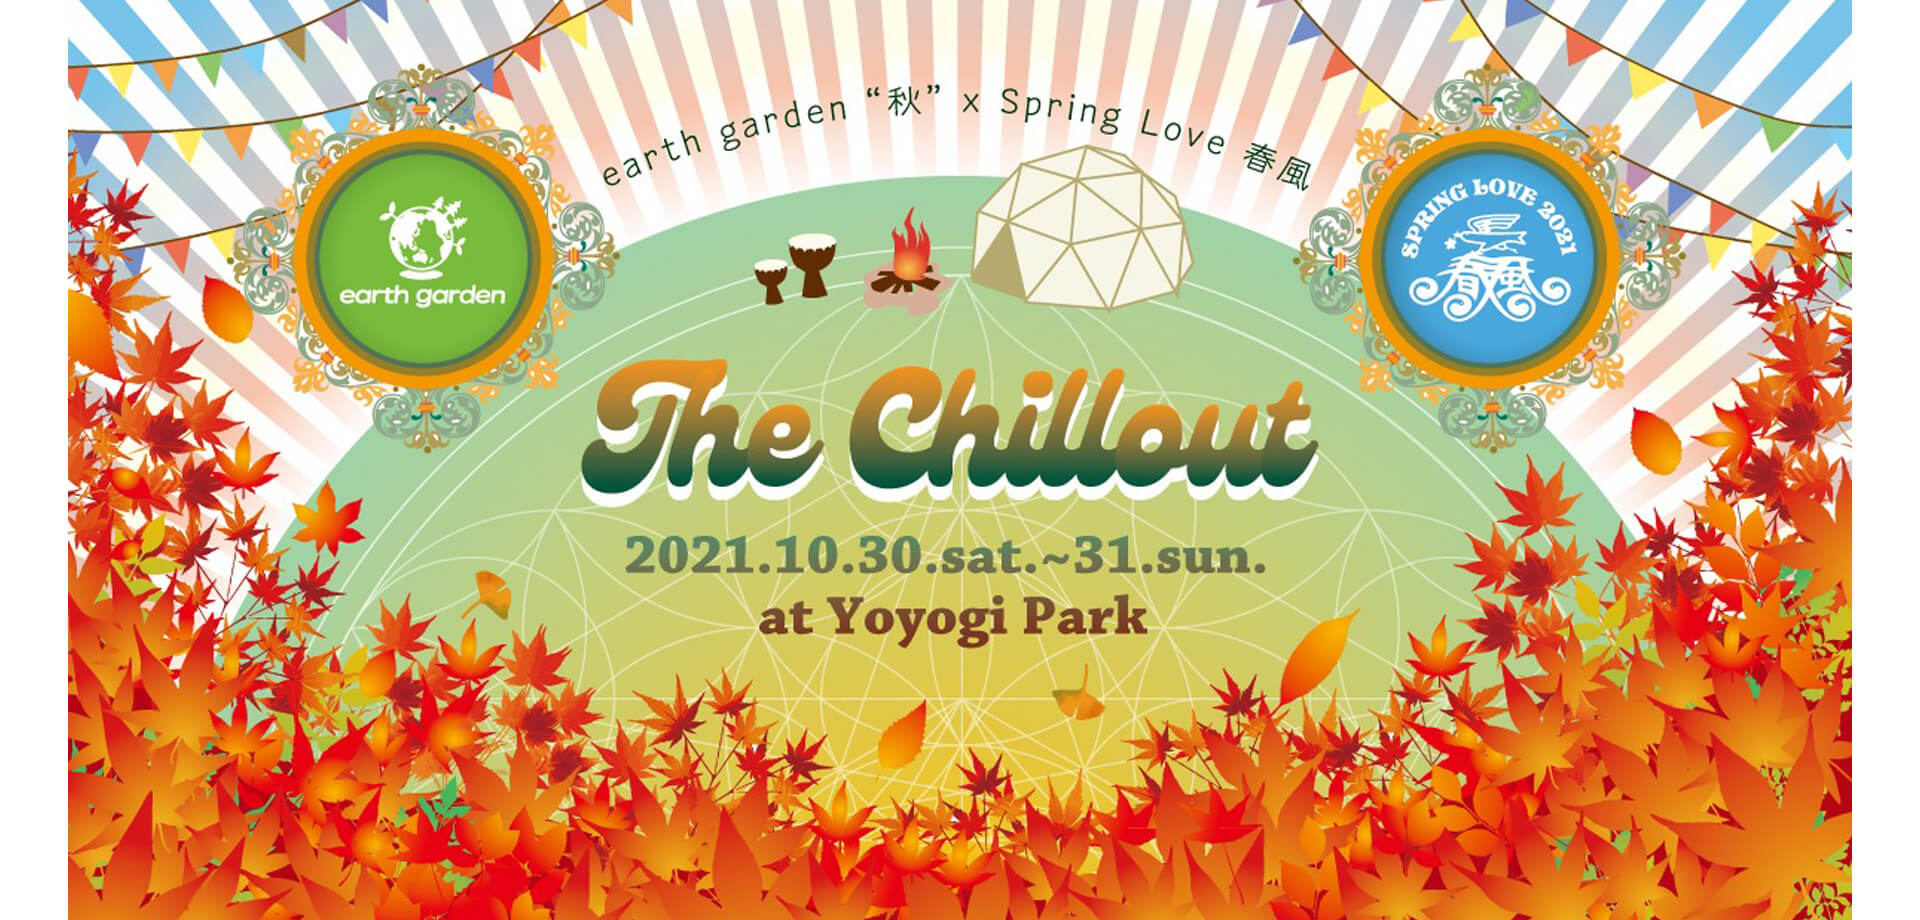 """earth garden """"秋"""" x Spring Love 春風  『The Chillout』"""